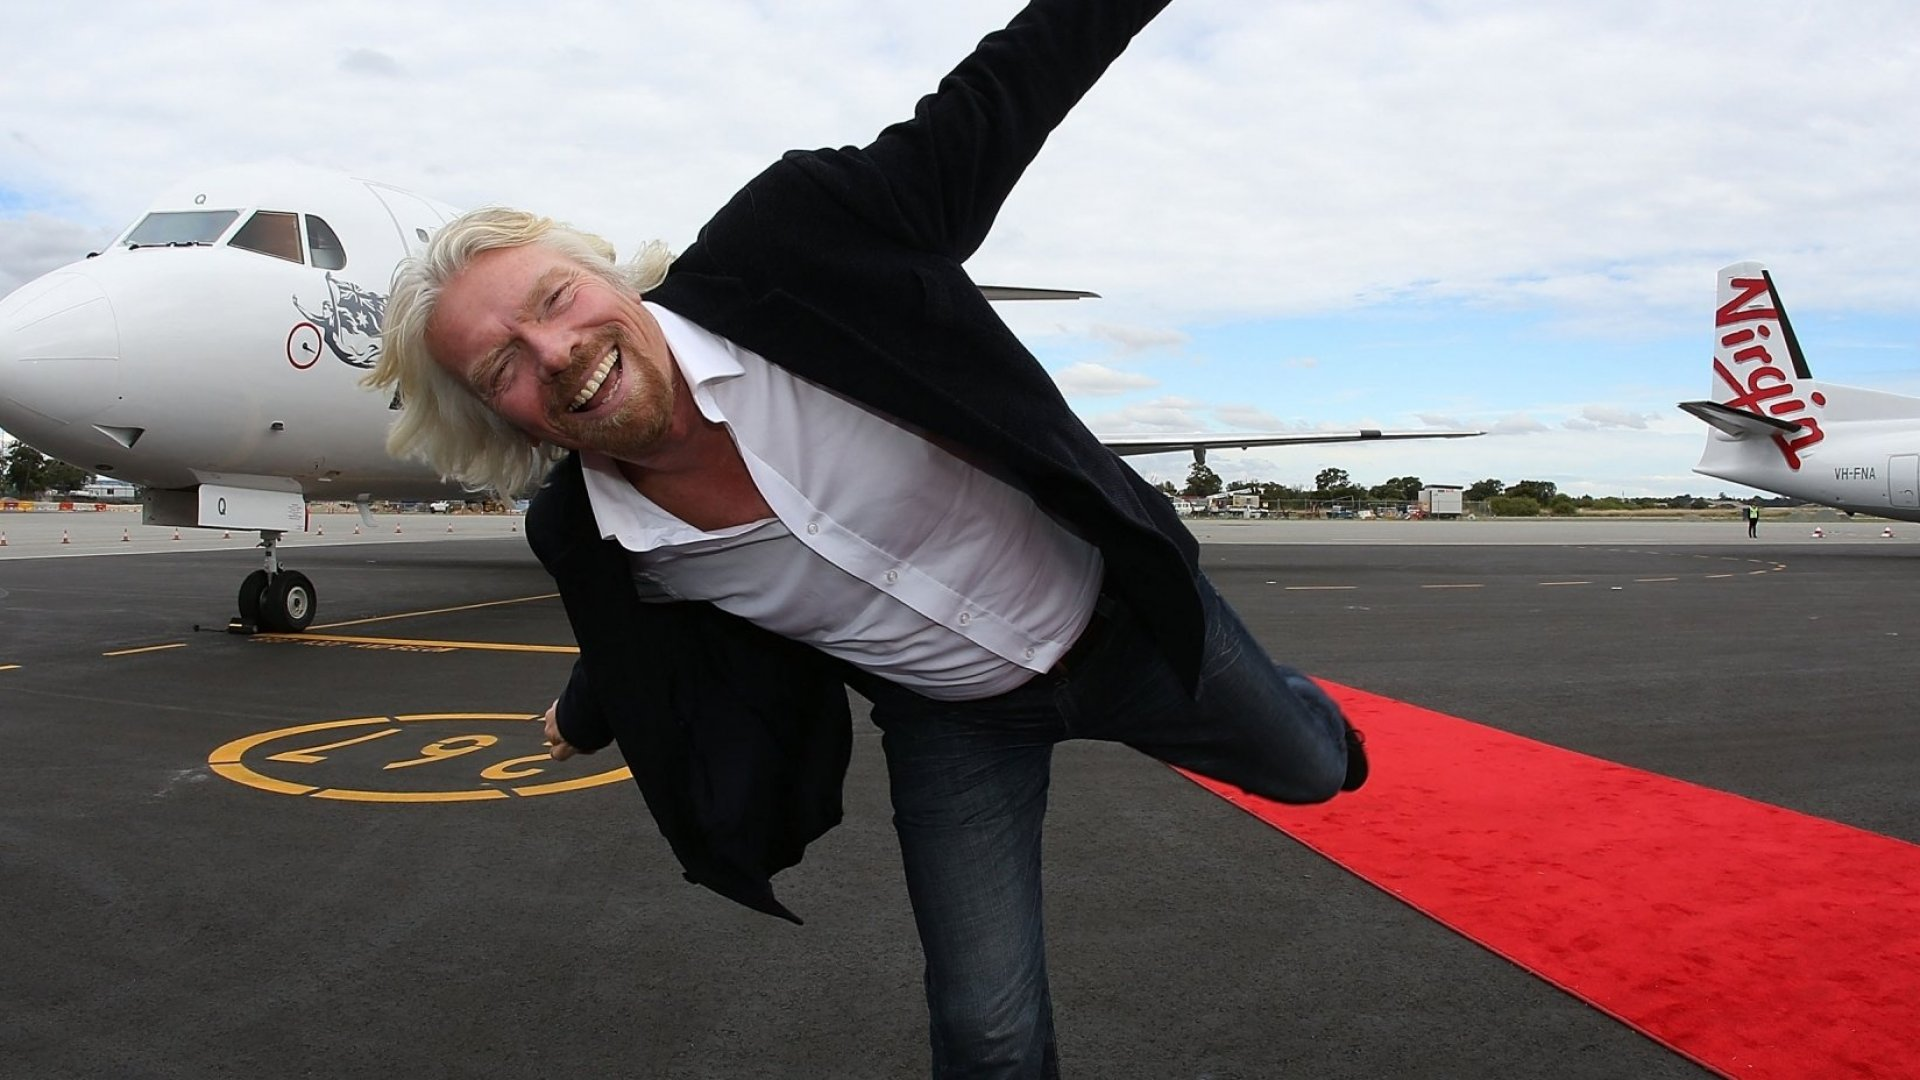 Richard Branson Weathers Hurricane Irma on His Private Island and Survives